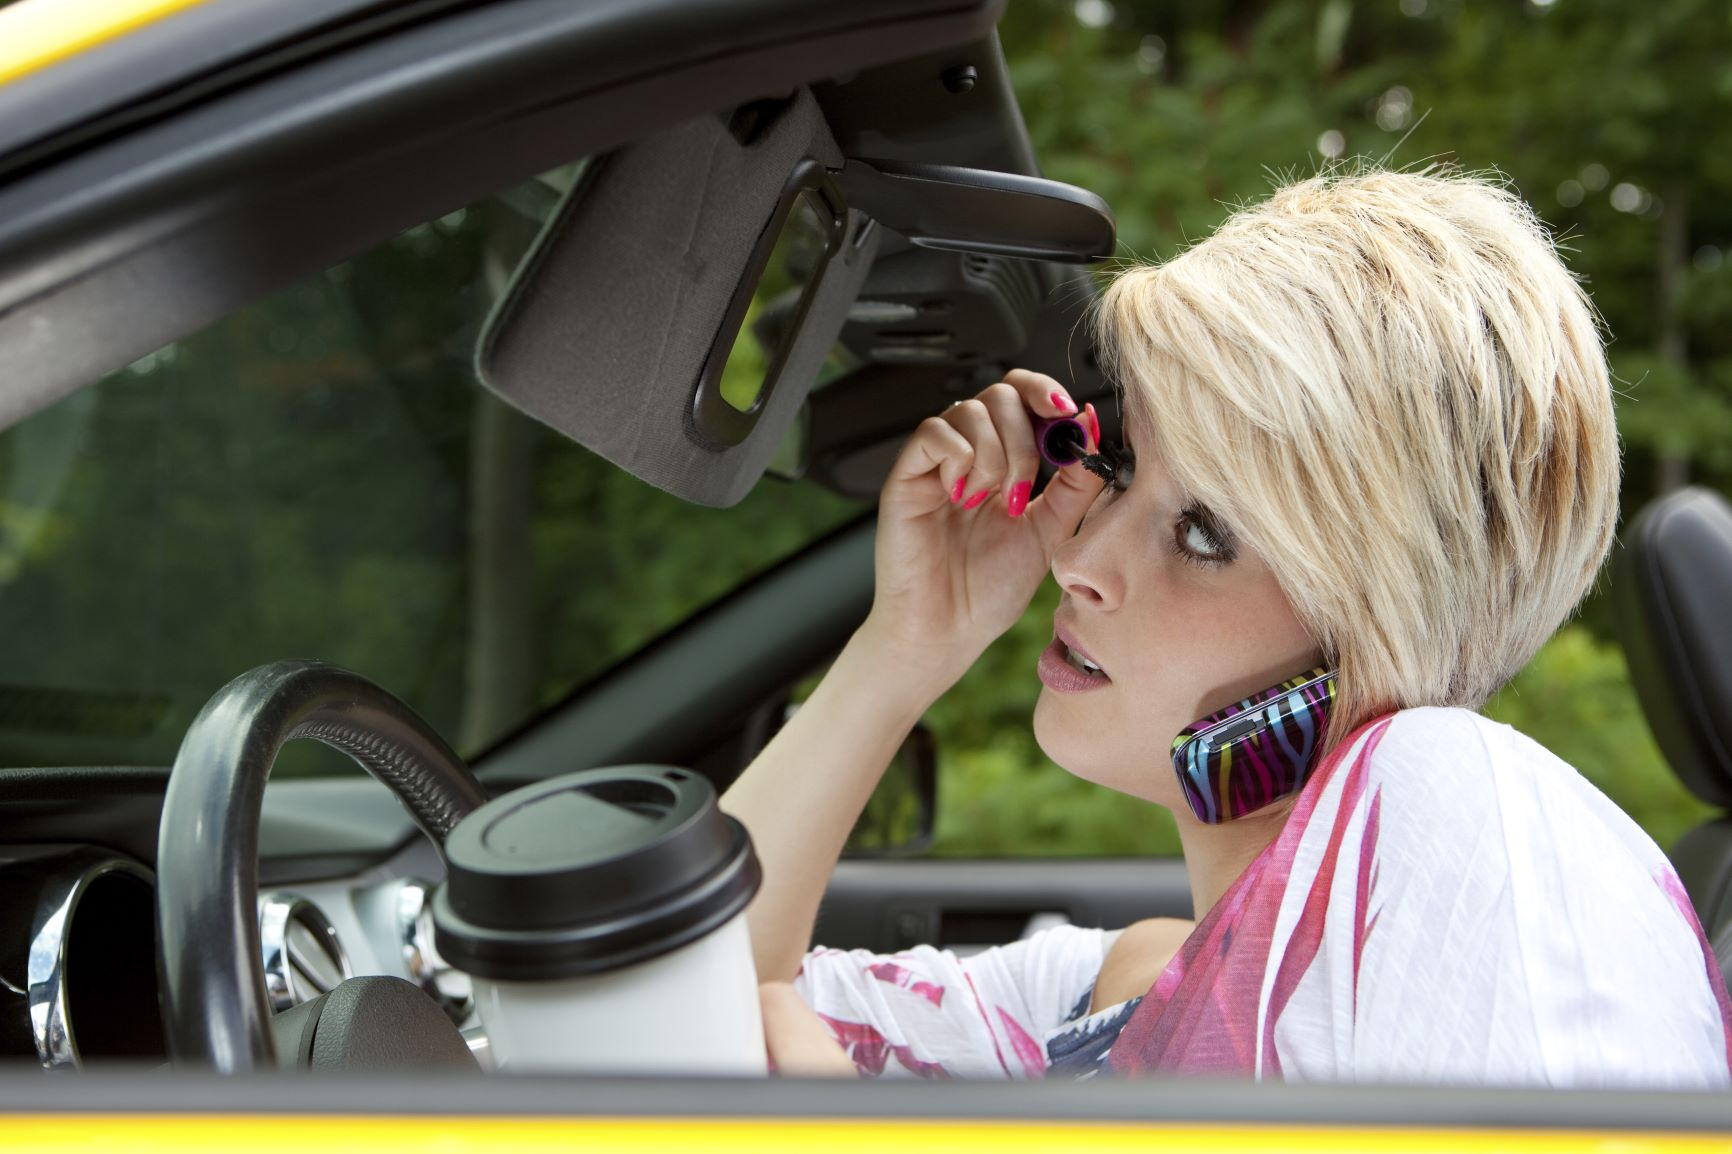 woman driving car while applying mascara, talking on her phone, and holding a coffee